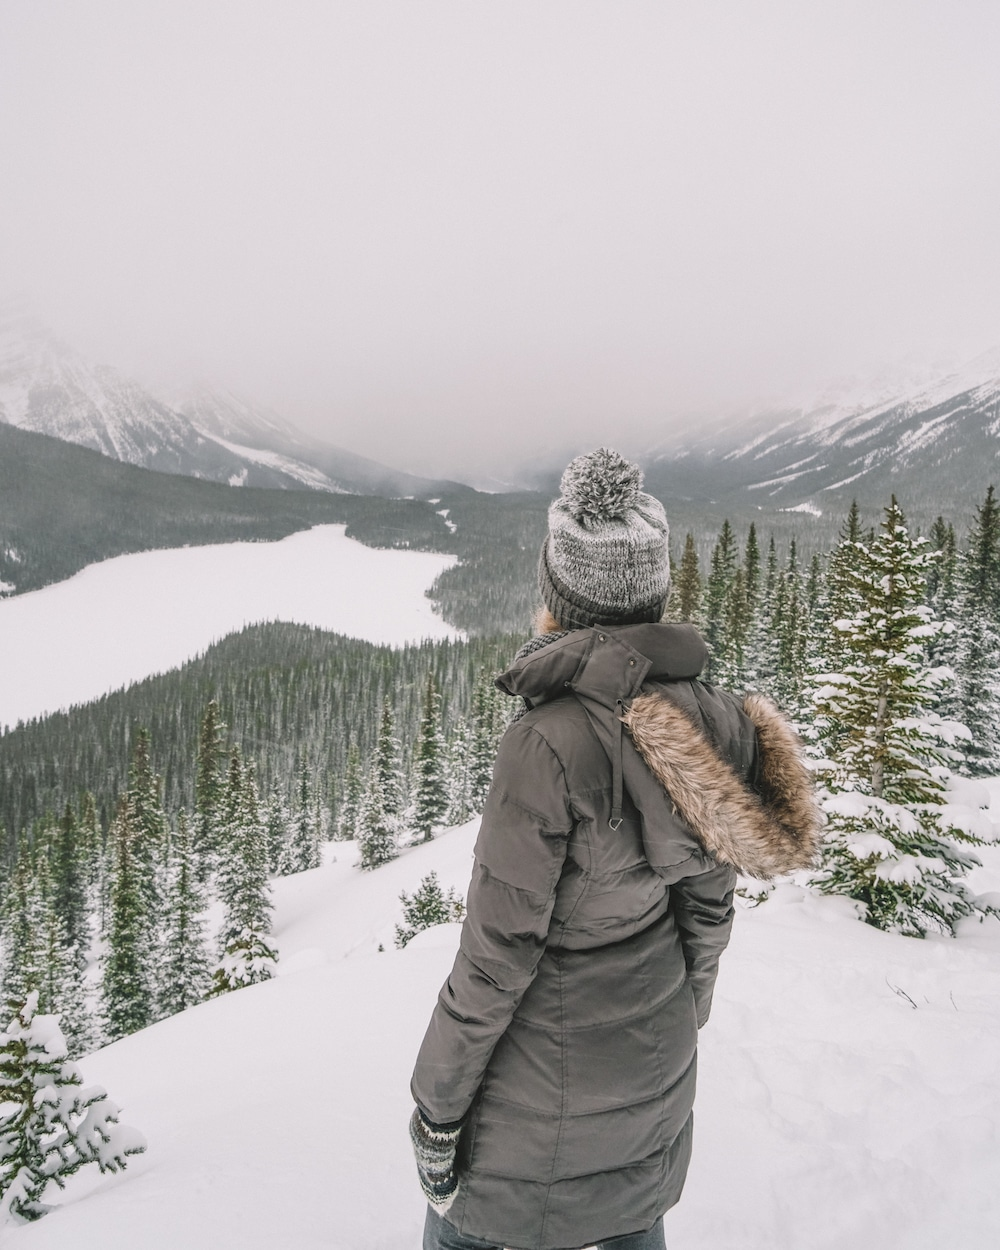 eb24a2998 Visiting Banff and Jasper in Winter? Here's Everything You Need to ...